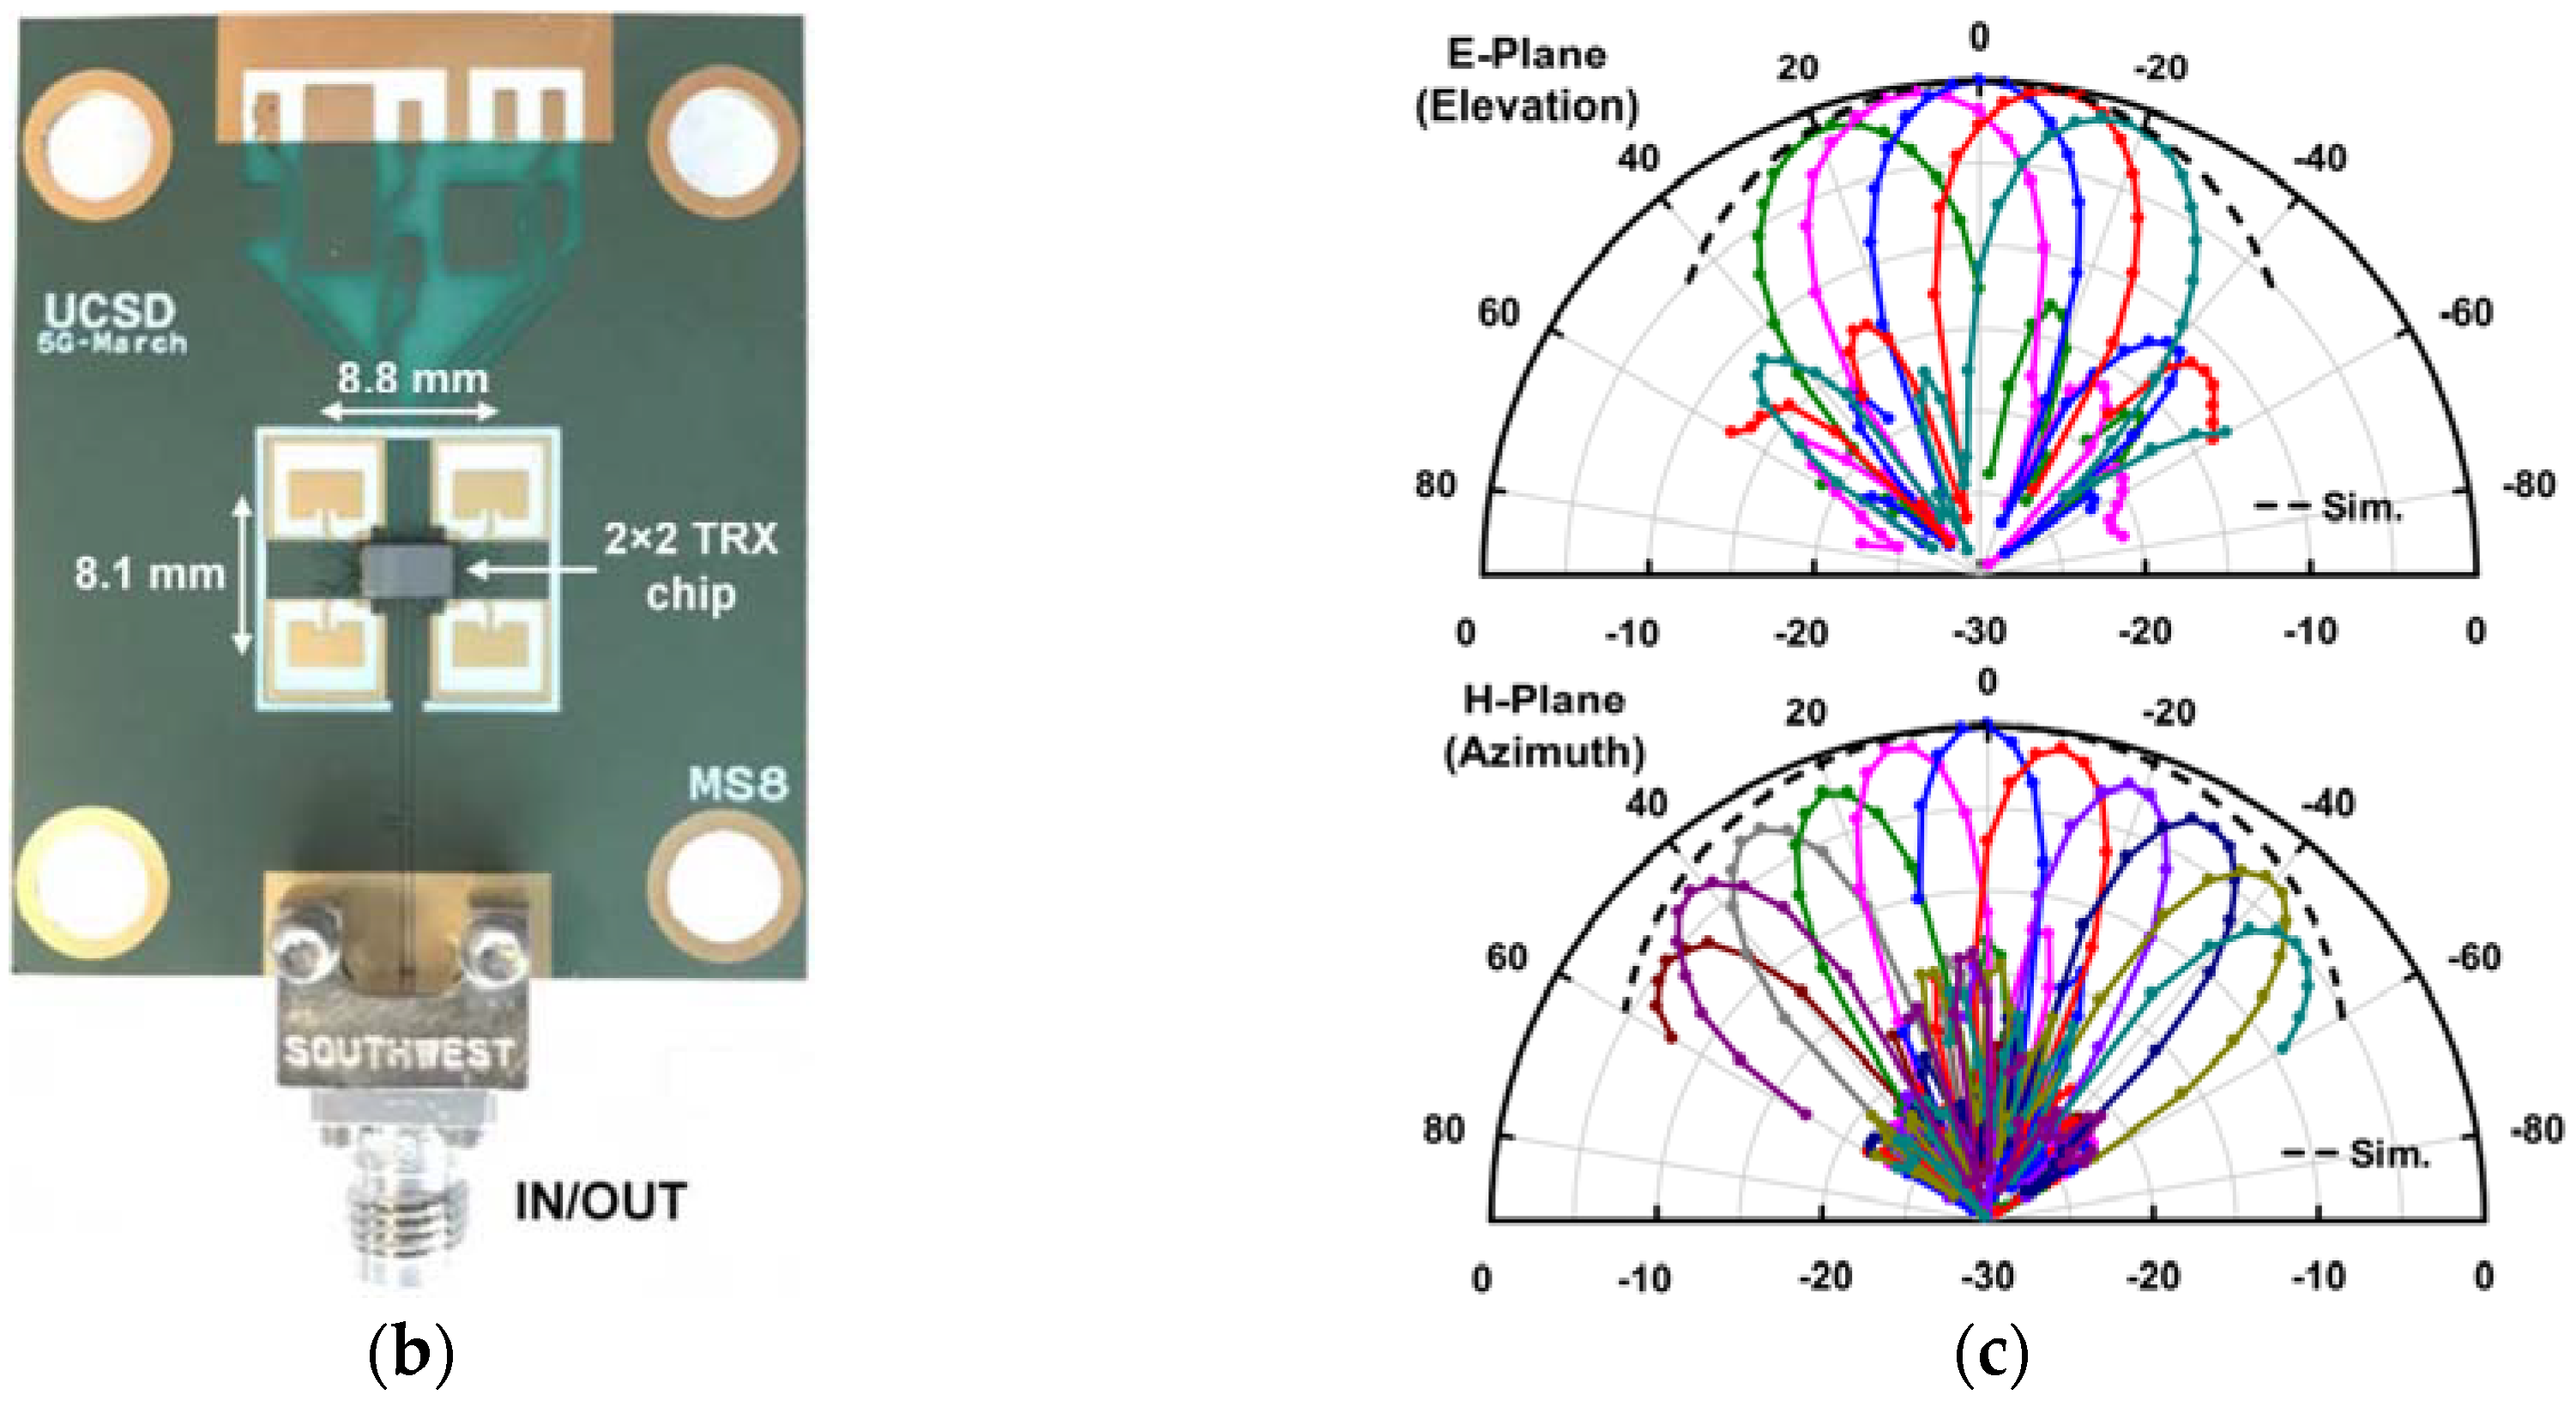 Sensors Free Full Text Review Of Recent Phased Arrays For Radio Waves Diagram The Basic Shape Wave 18 03194 G020a G020b